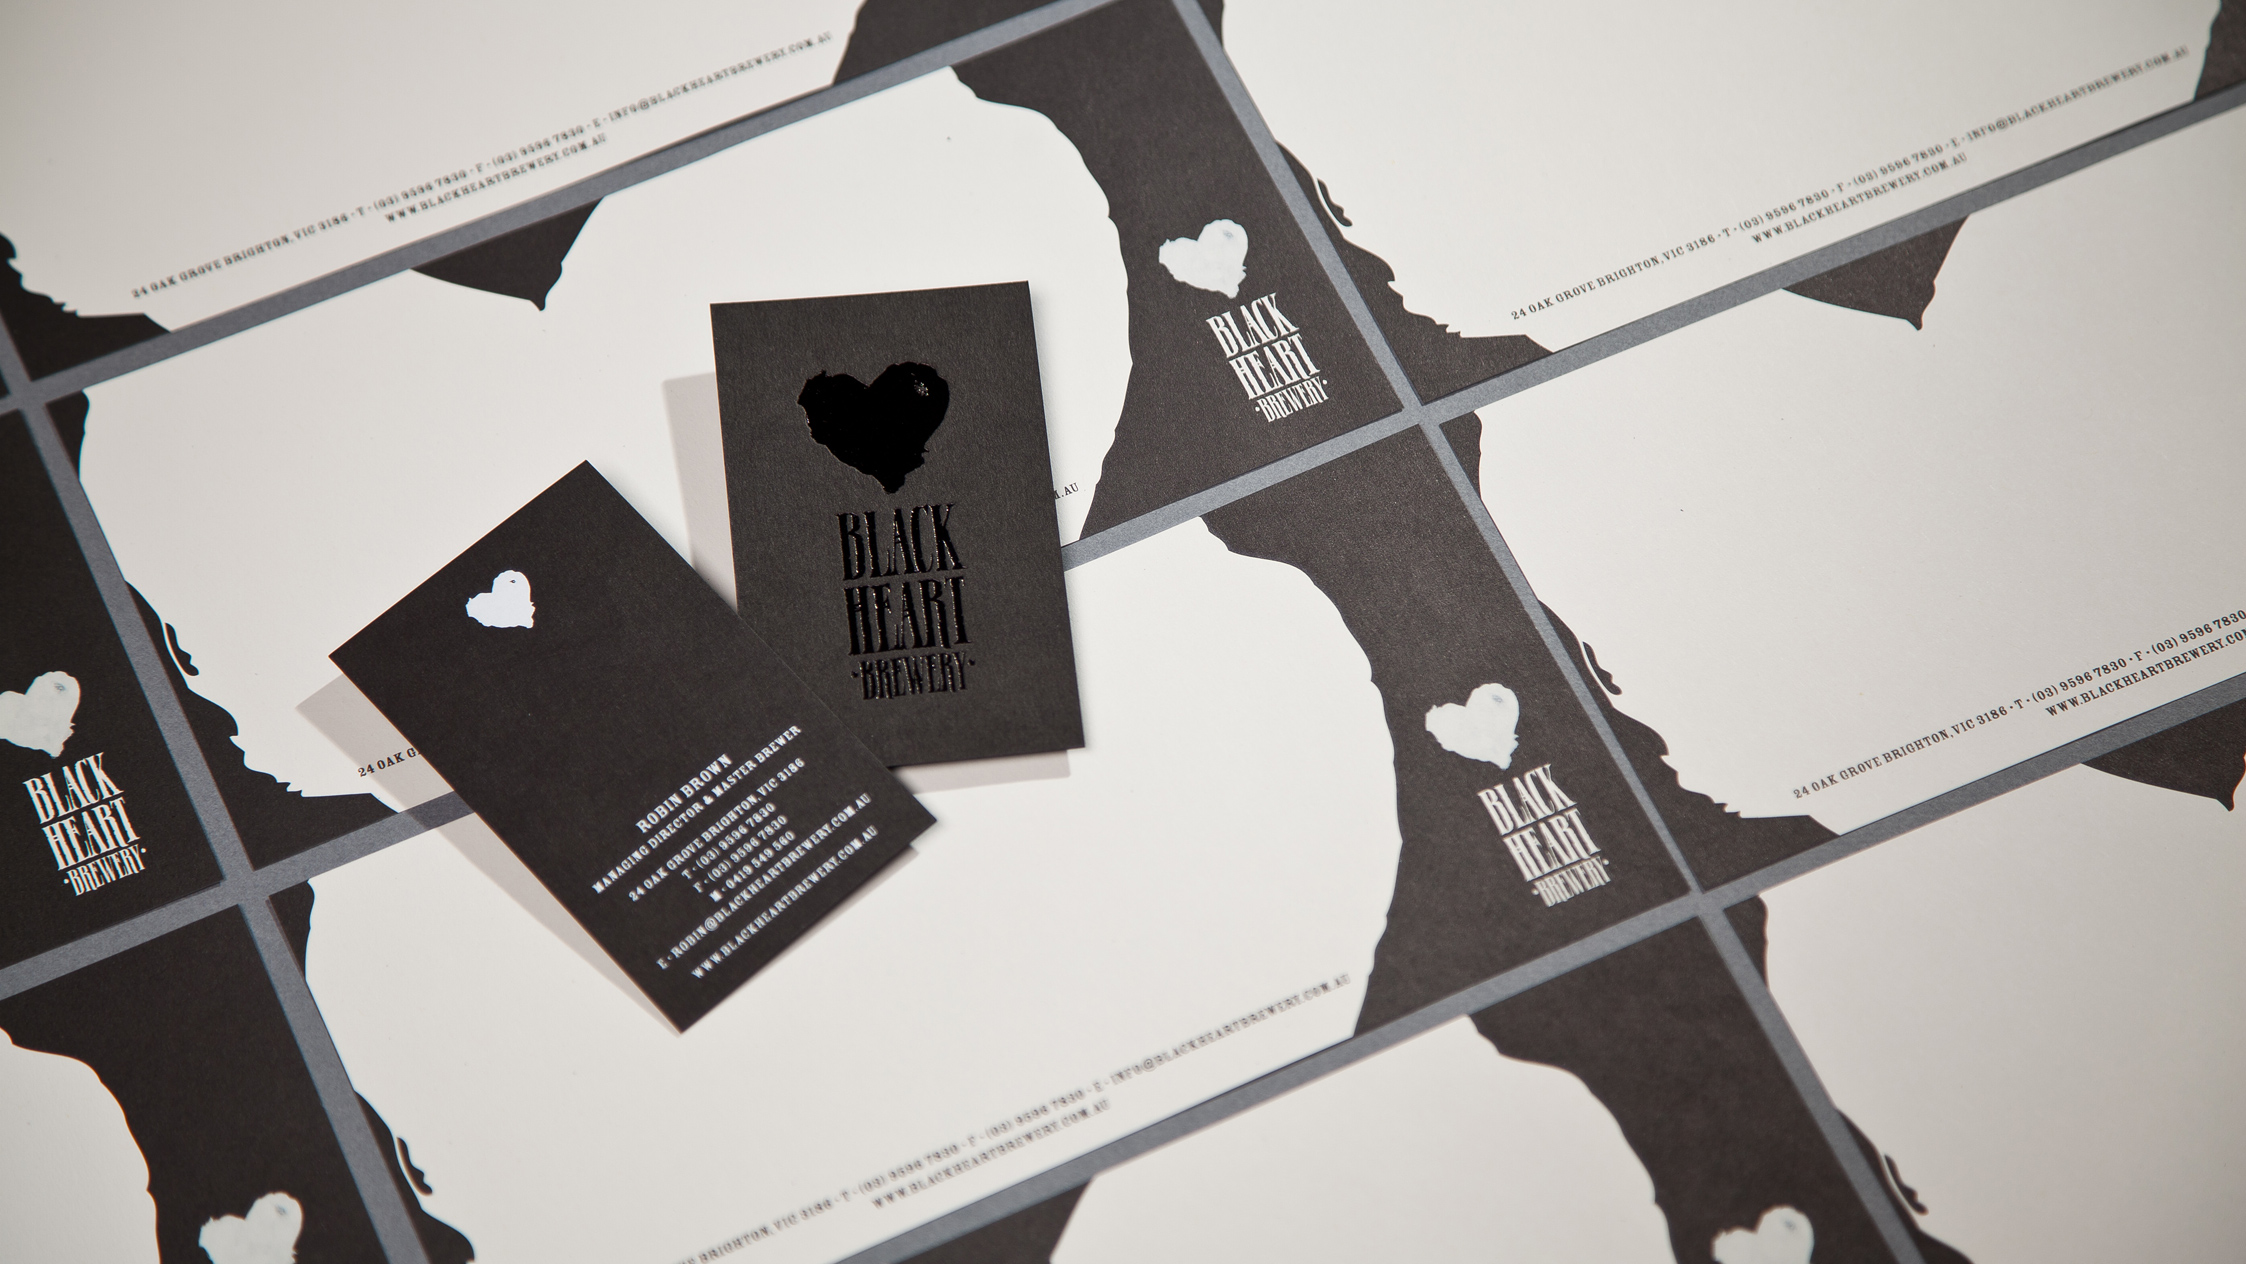 Black Heart Brewery Stationery Suite